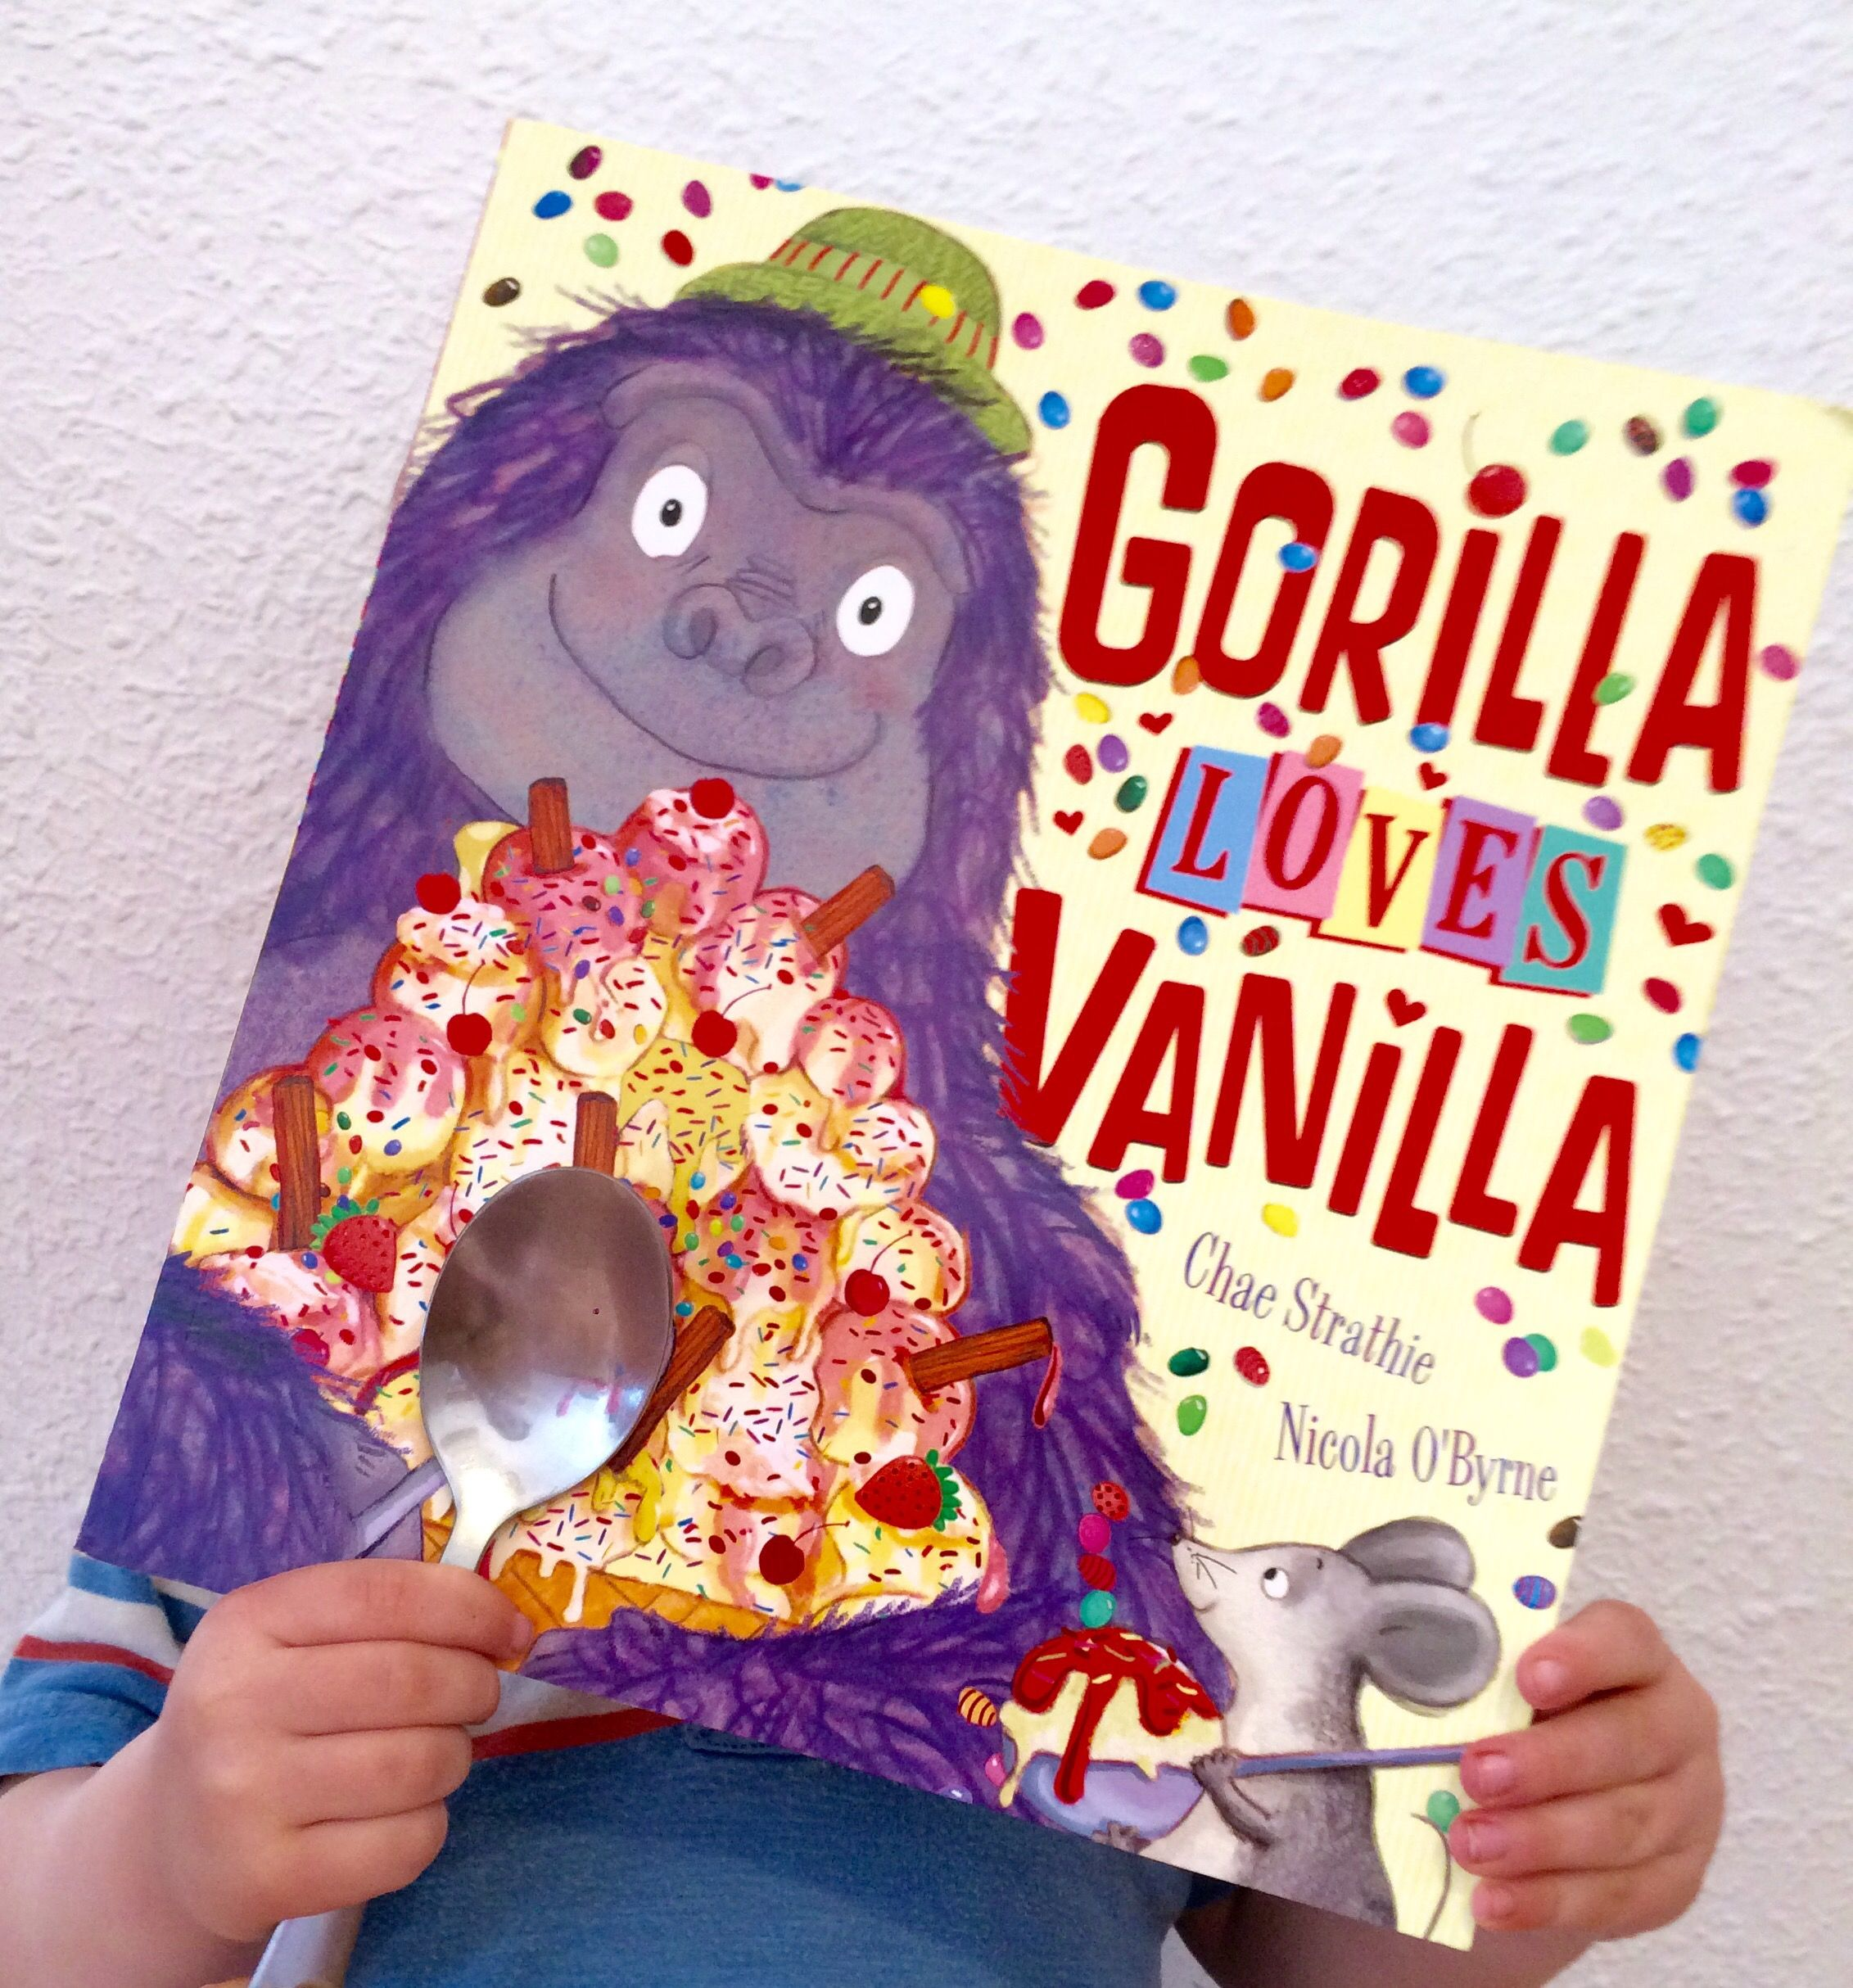 Gorilla loves vanilla explore classic recipe book suggestions and more forumfinder Image collections